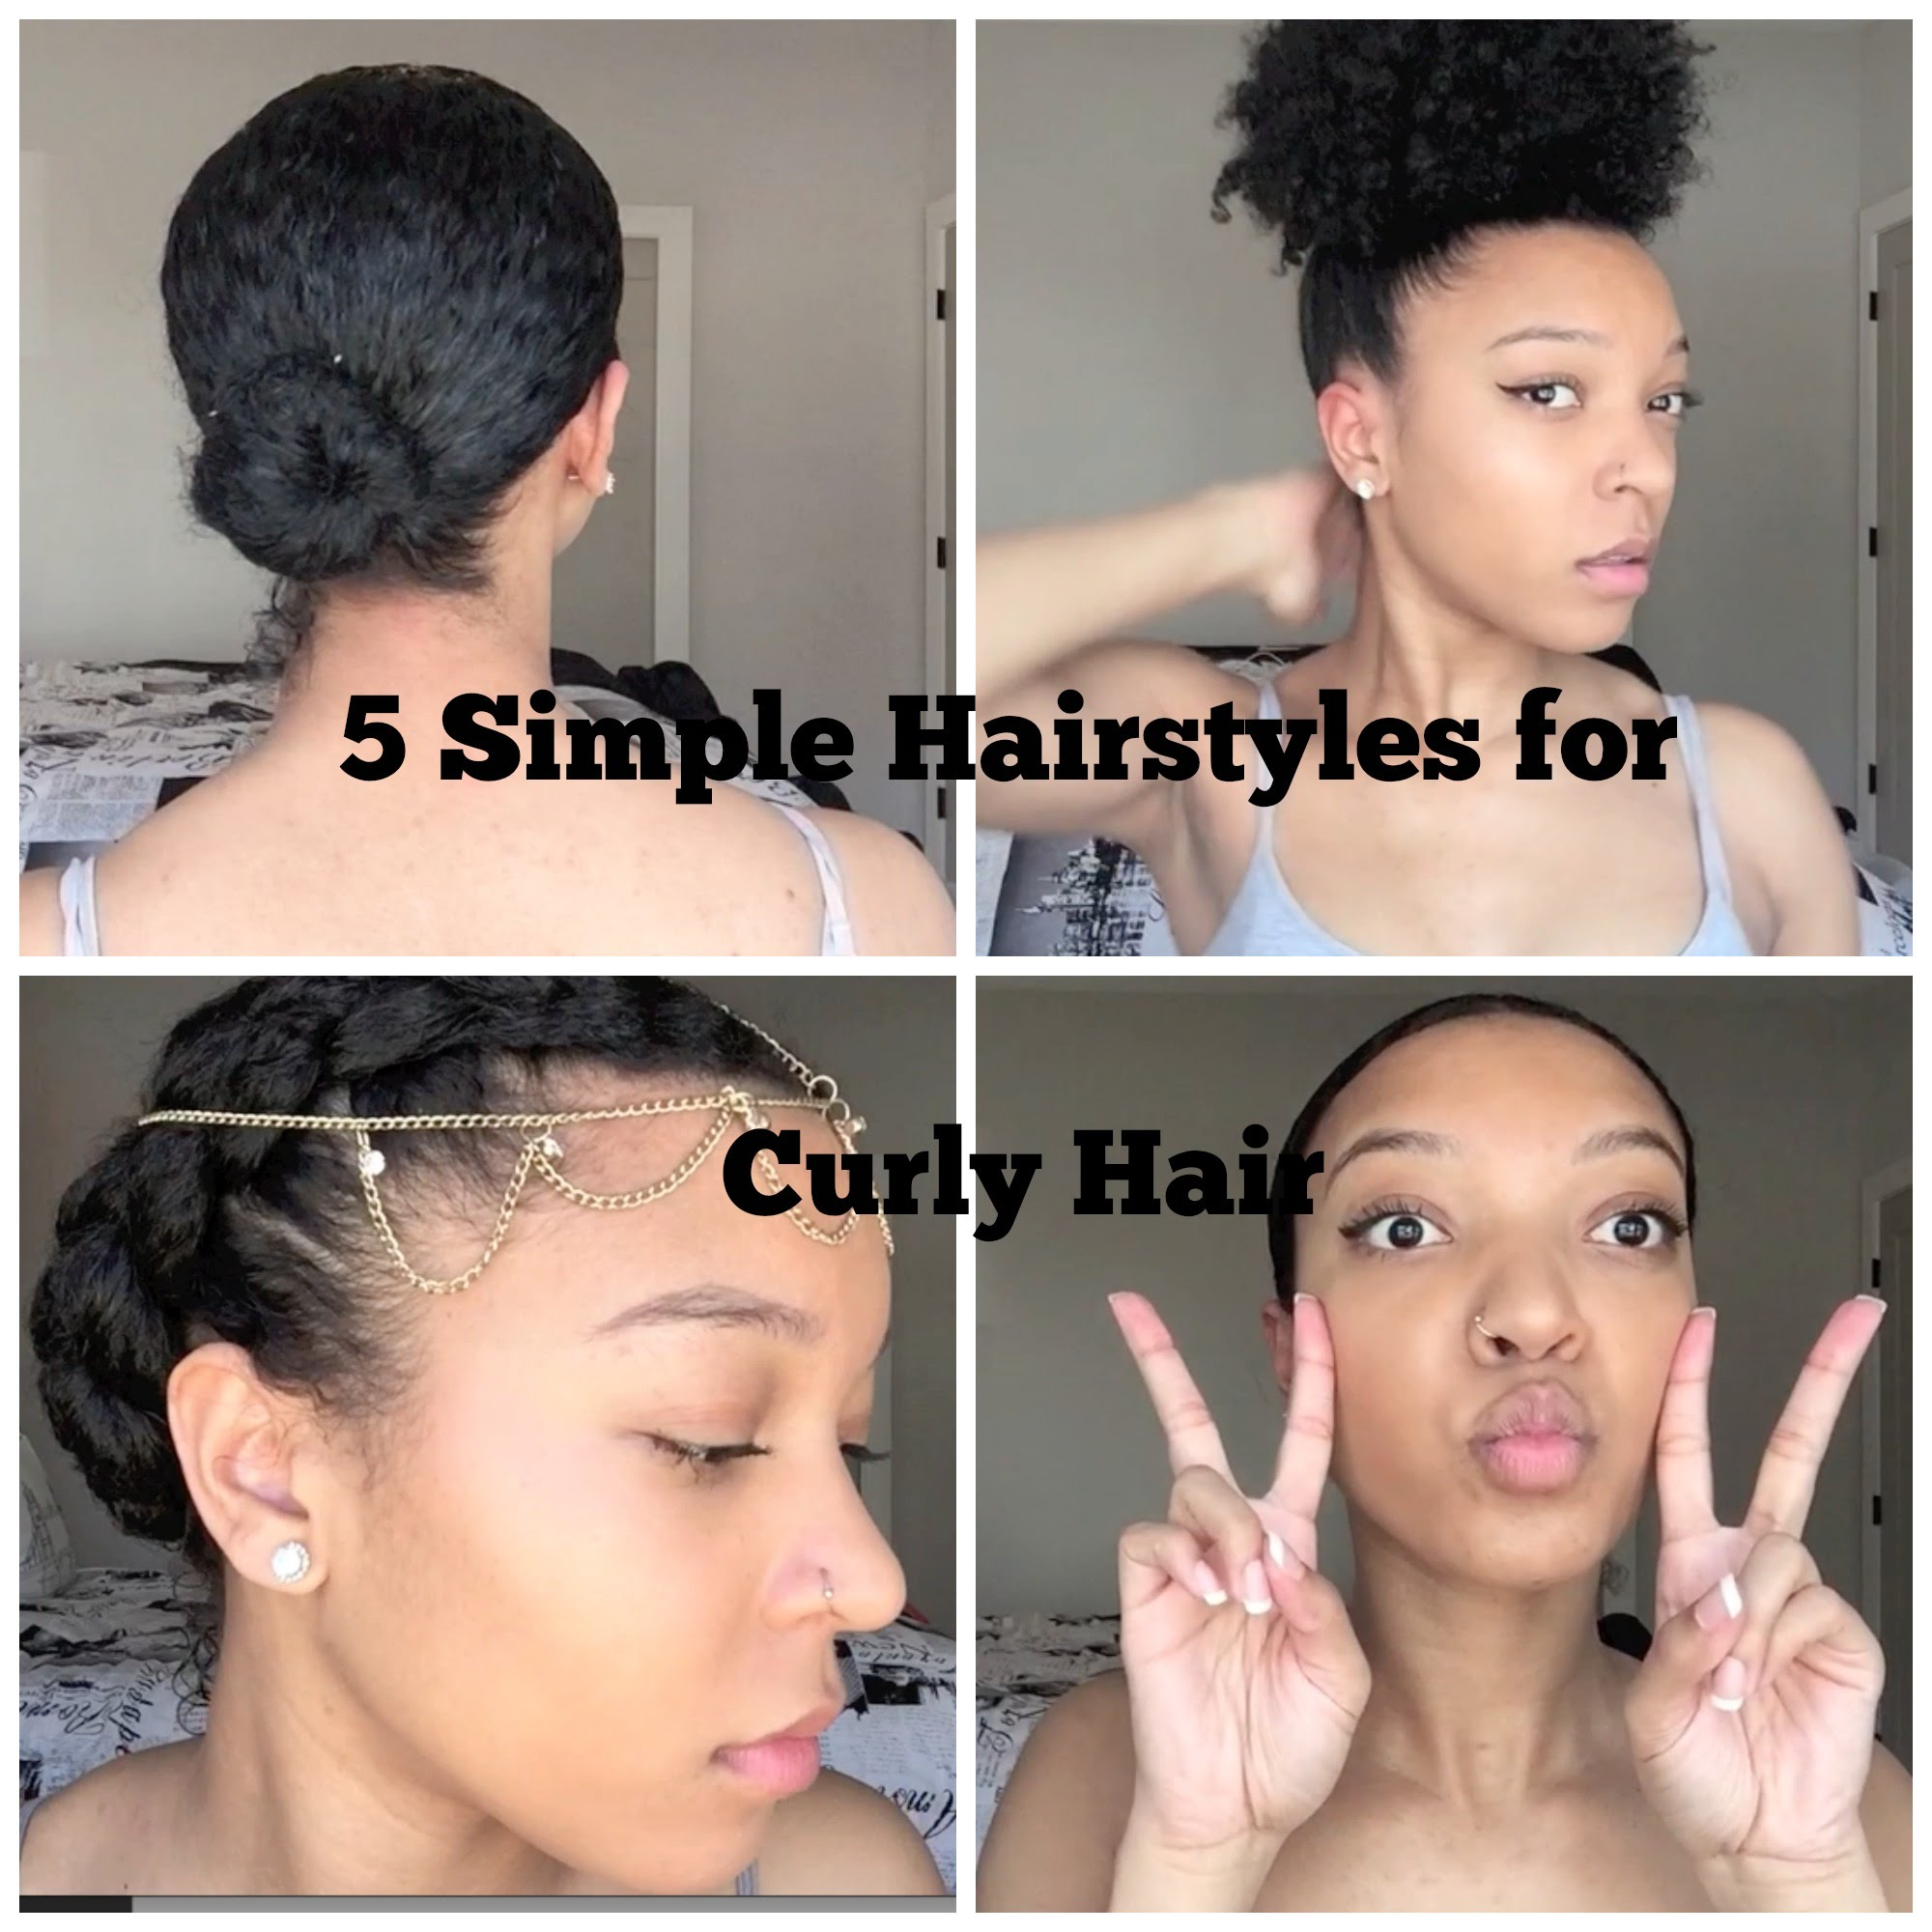 5 Simple Hairstyles for Curly Hair